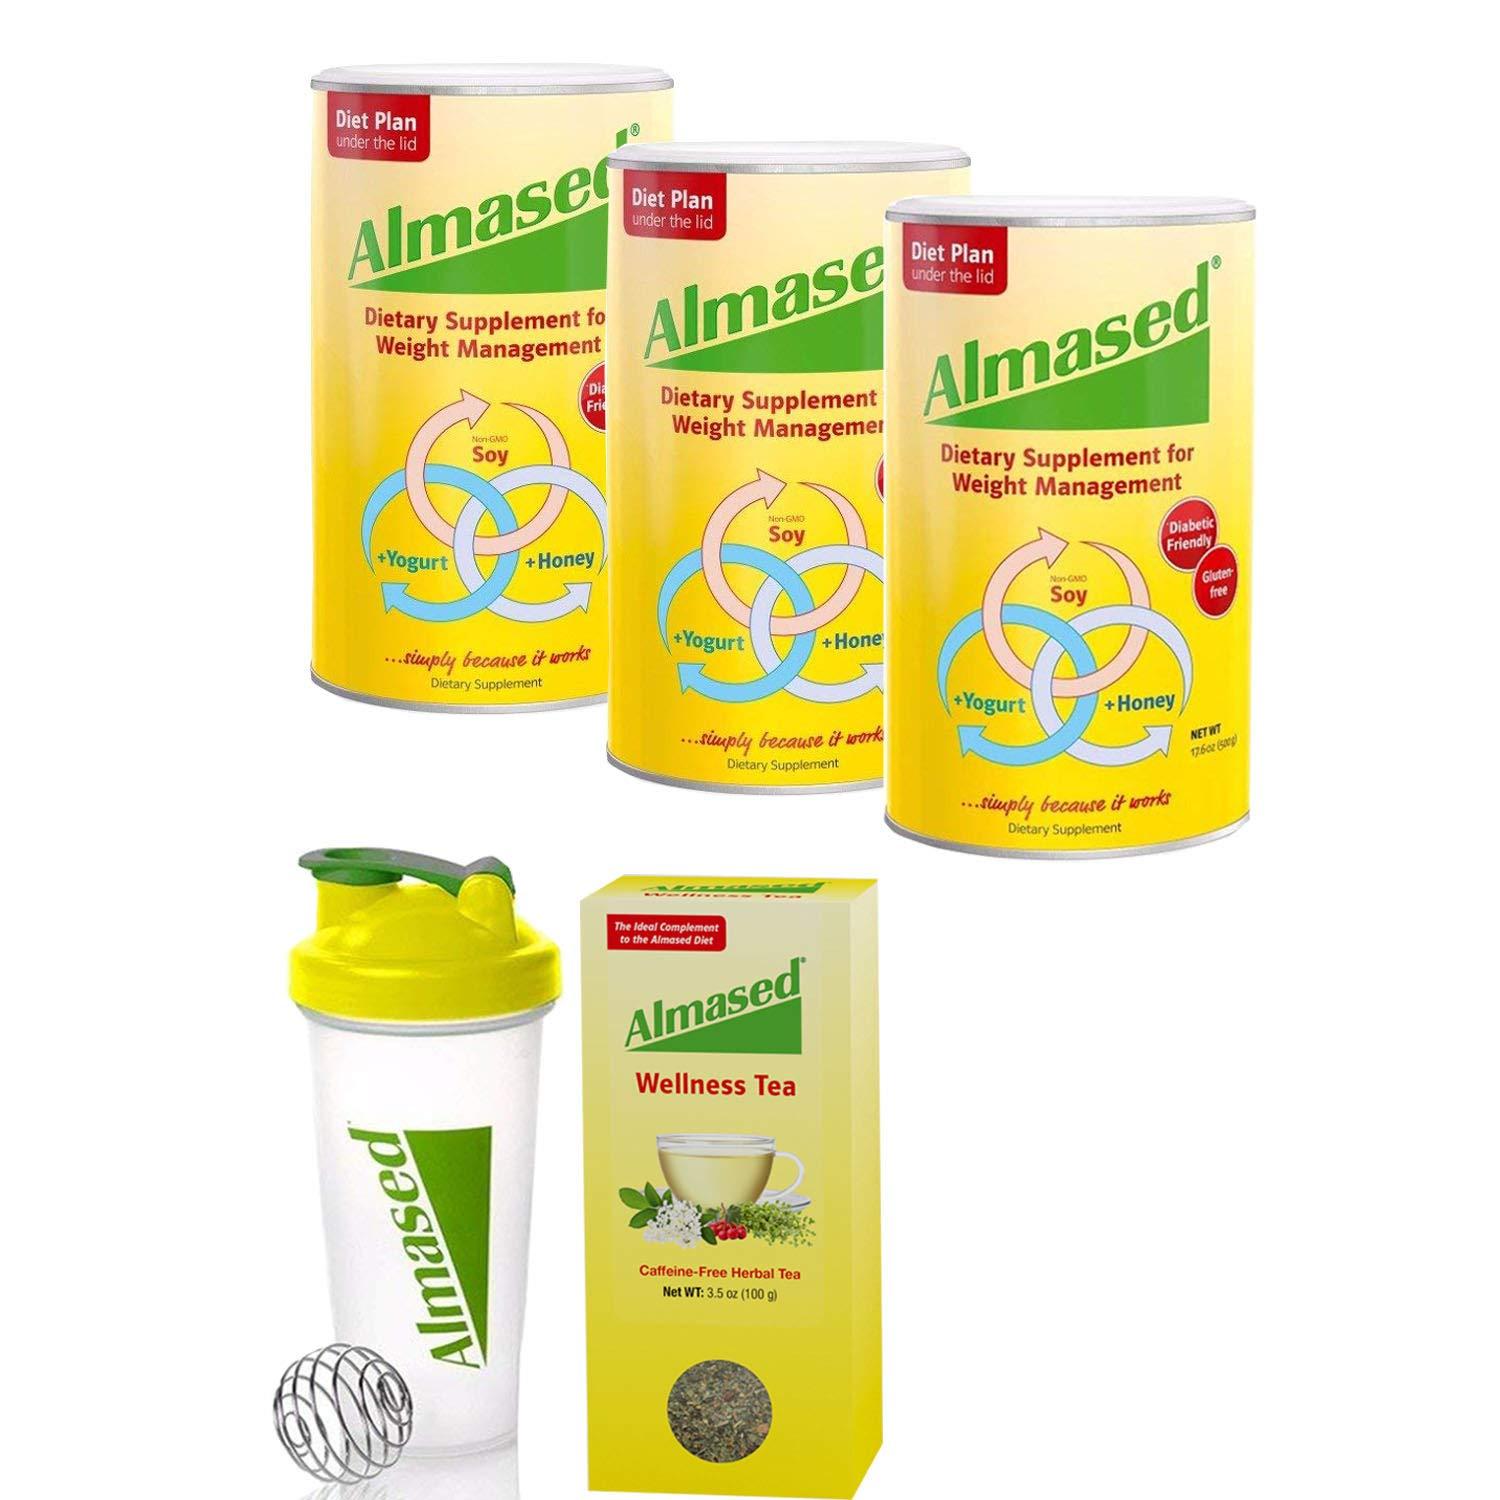 Almased® Meal Replacement Shakes -Soy Protein Powder for Weight Loss - Shake for Meal Replacement - Gluten Free, No Sugar Added (3 Pack + Free Shaker Bottle+ Almased® Wellness Tea) by Almased (Image #1)